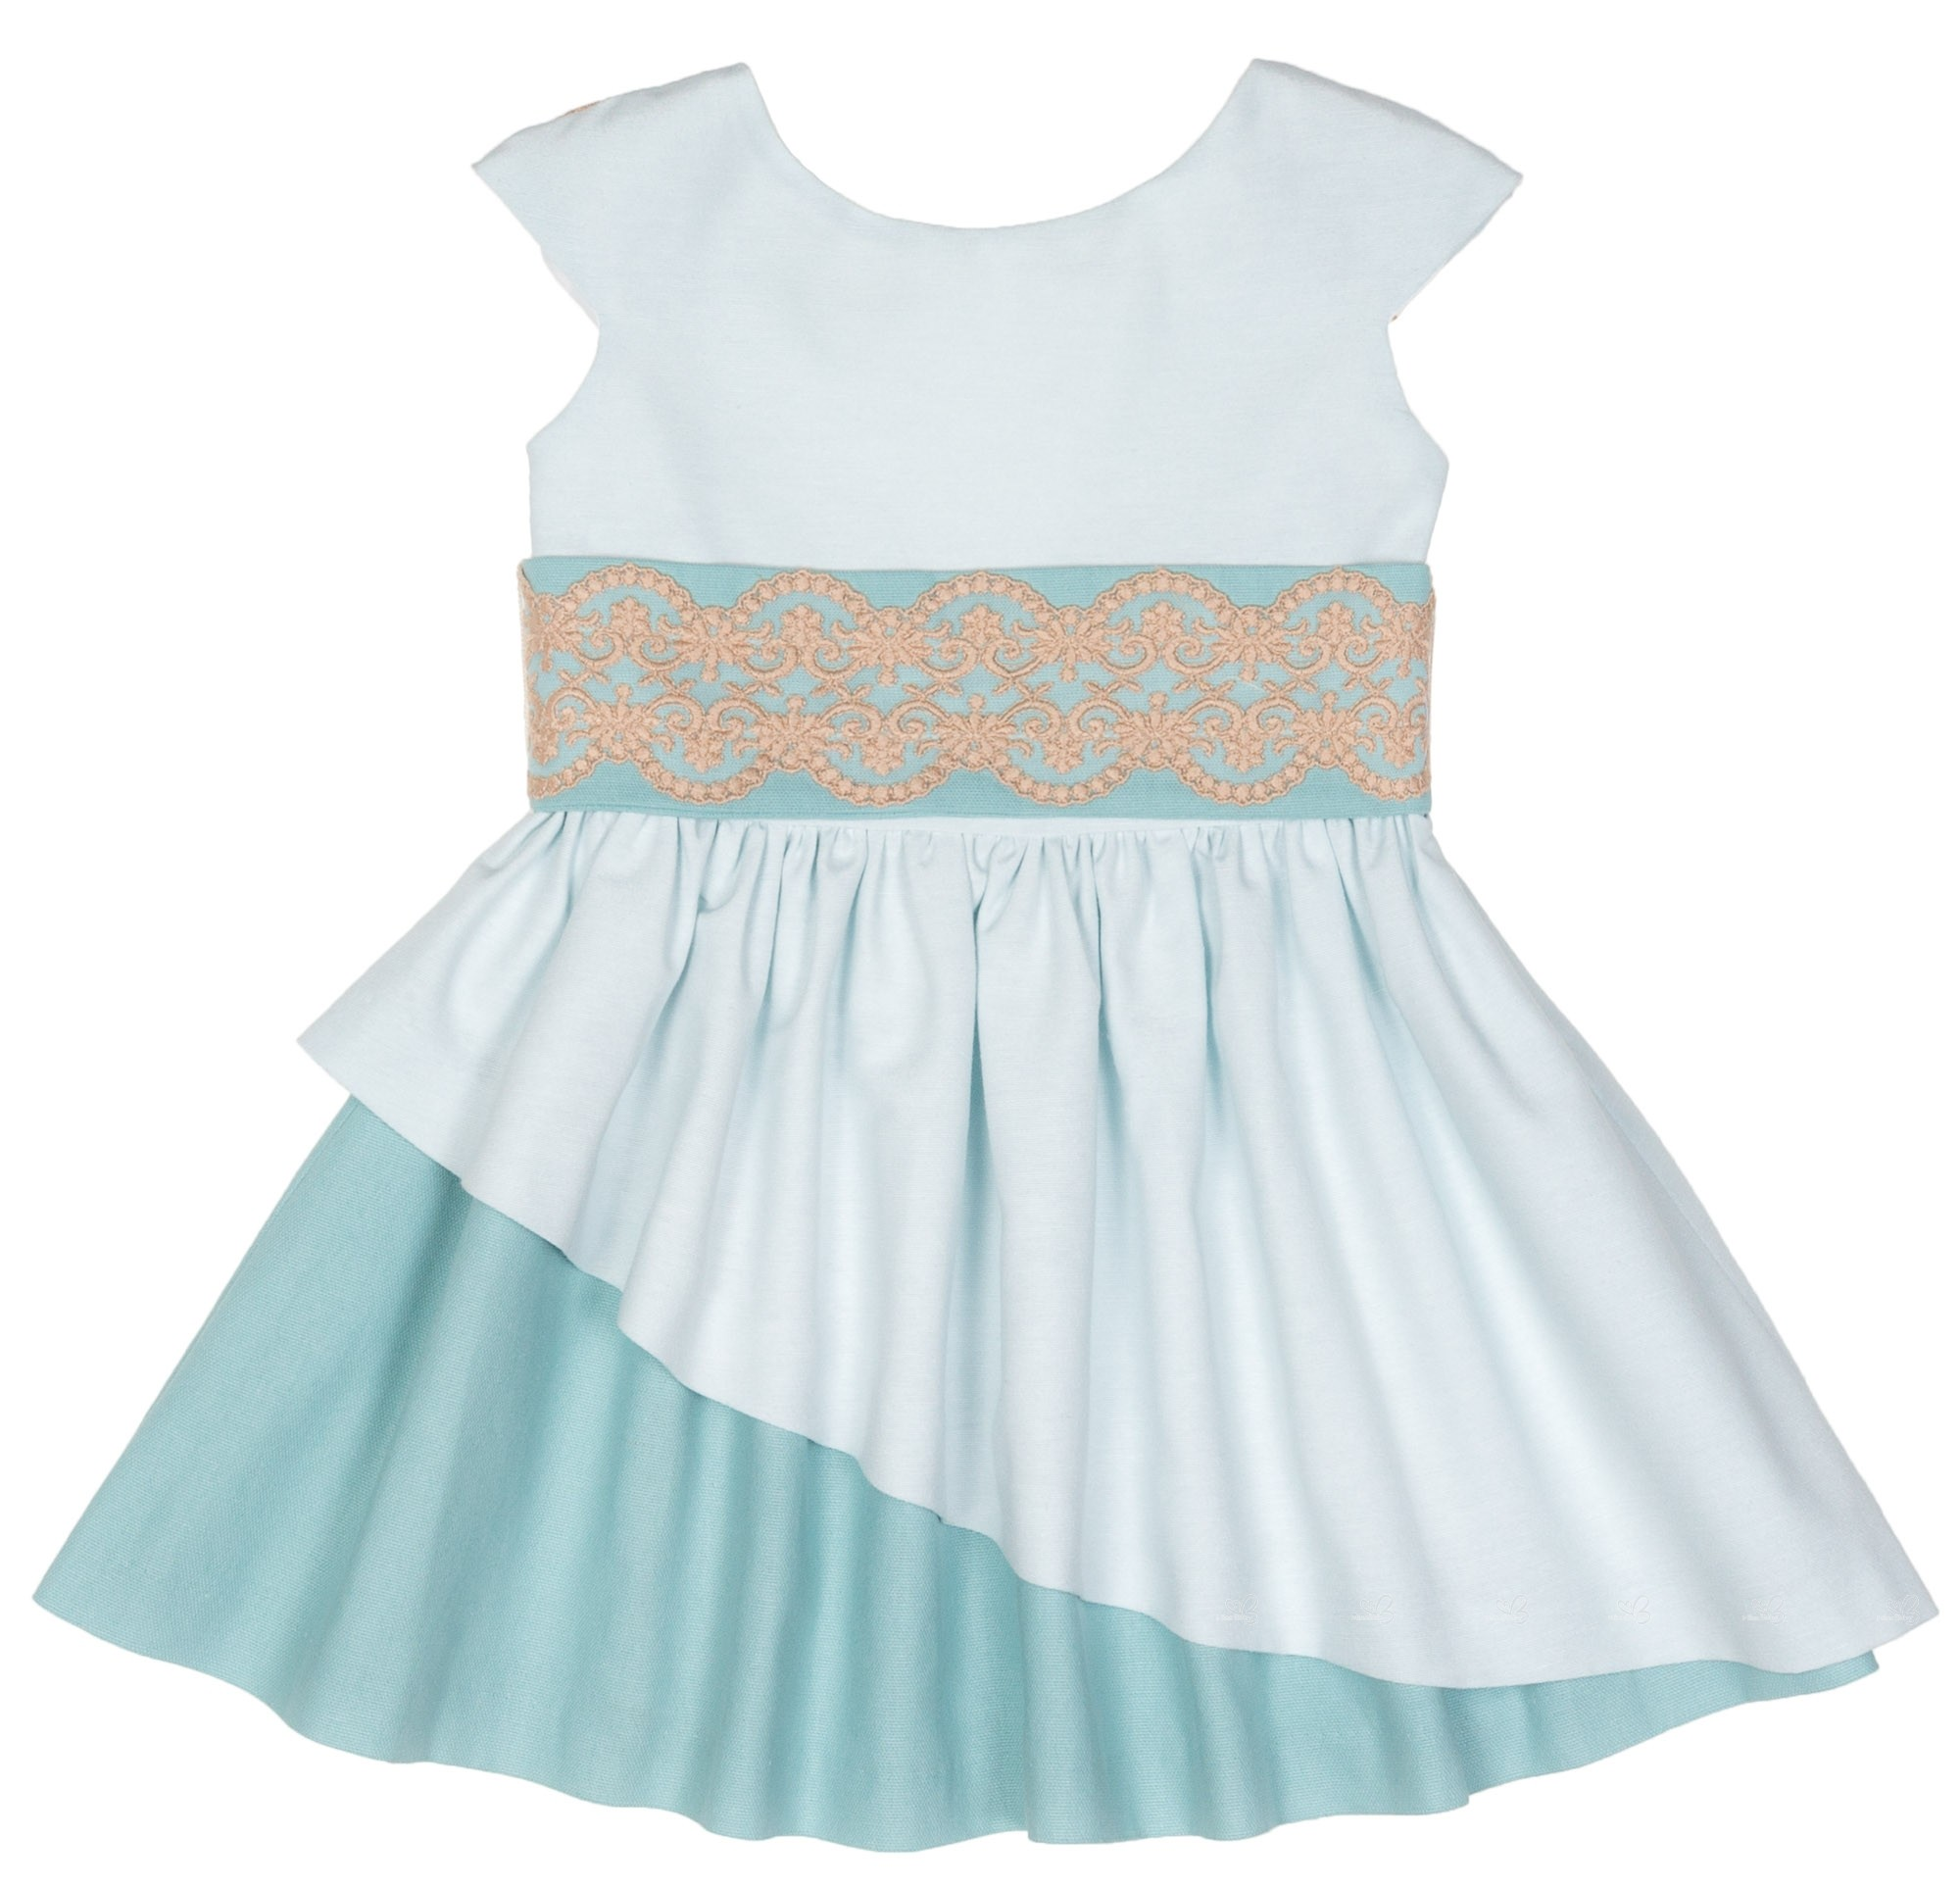 Girls Green Layered Dress With Beige Lace Sash